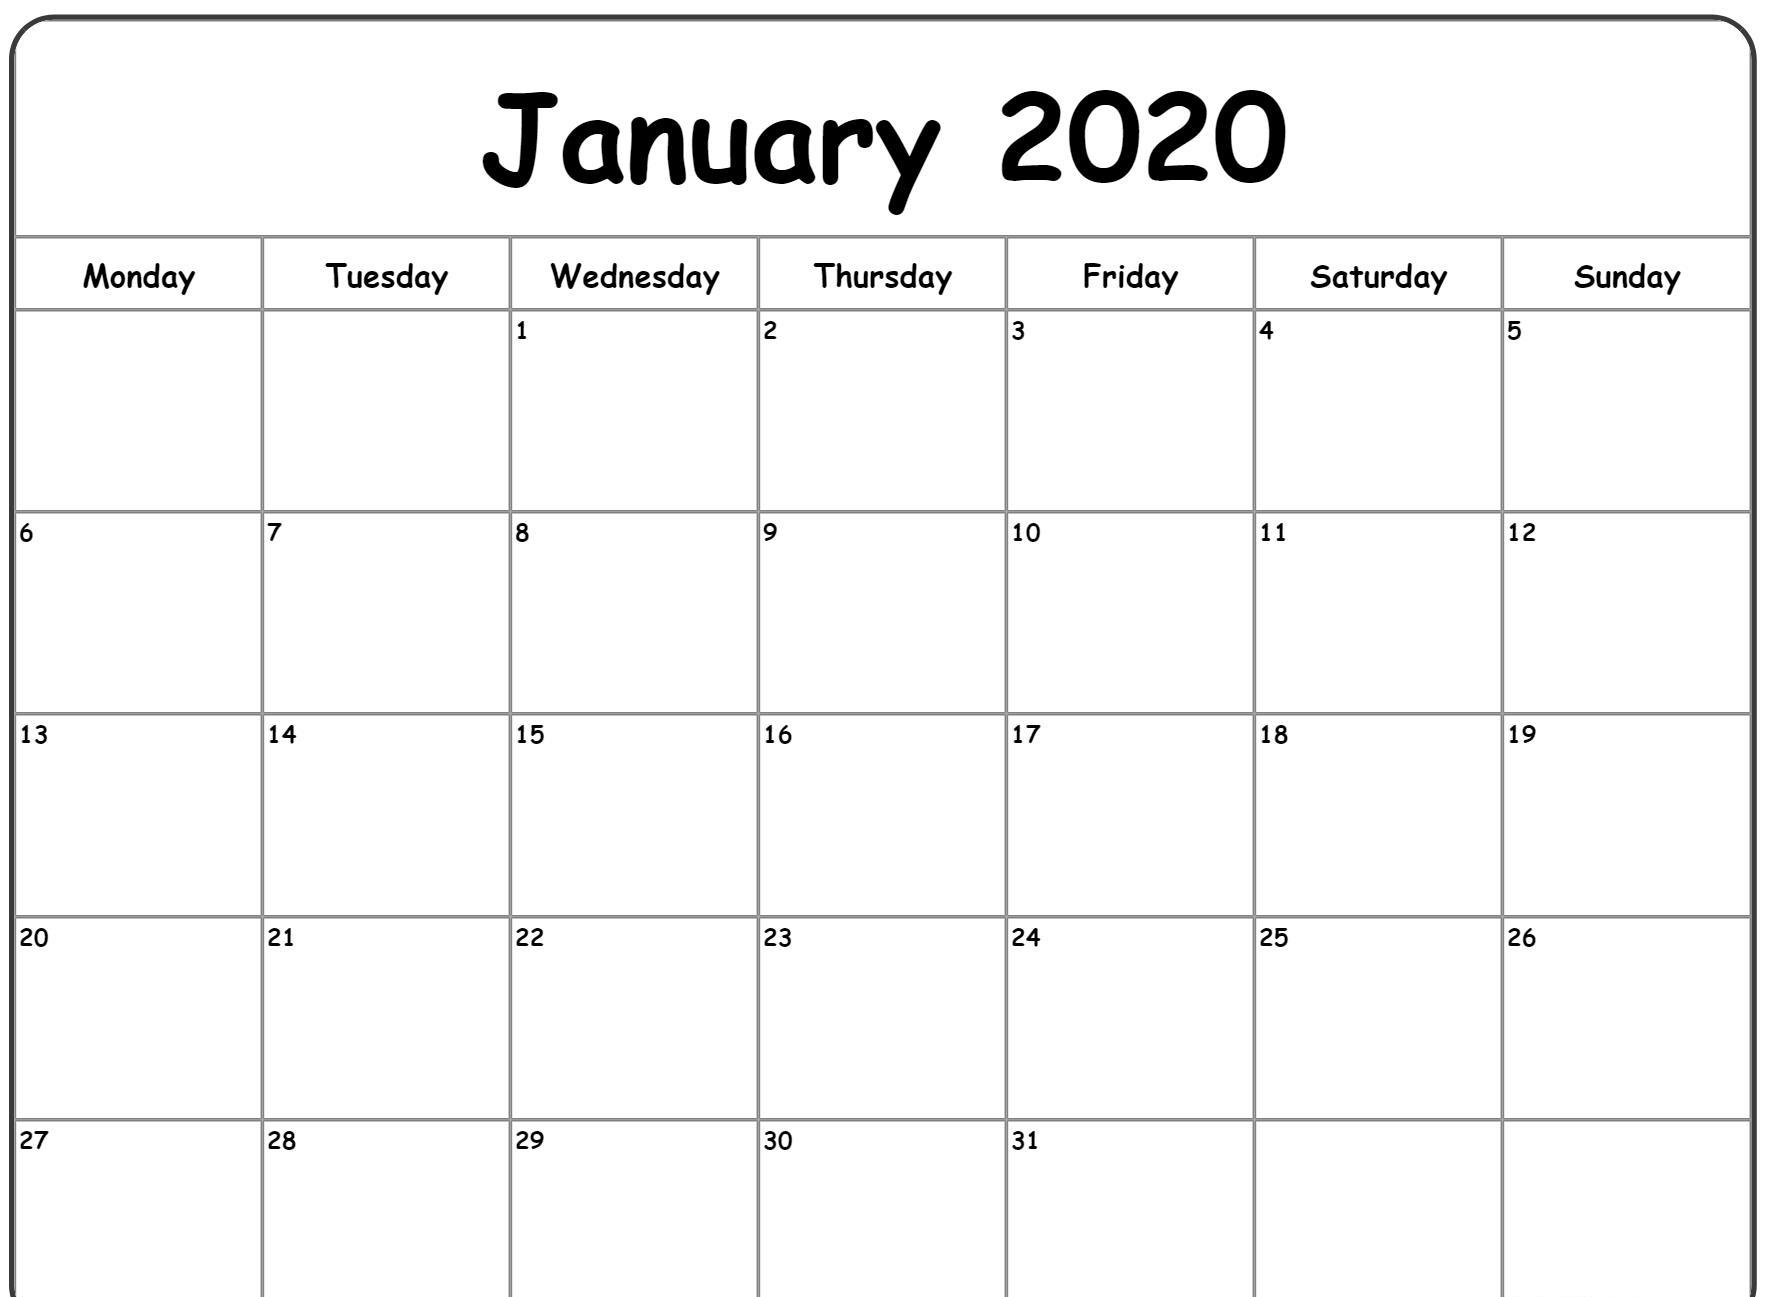 Free Blank January Calendar 2020 Printable Template regarding January 2020 Printable Calendar